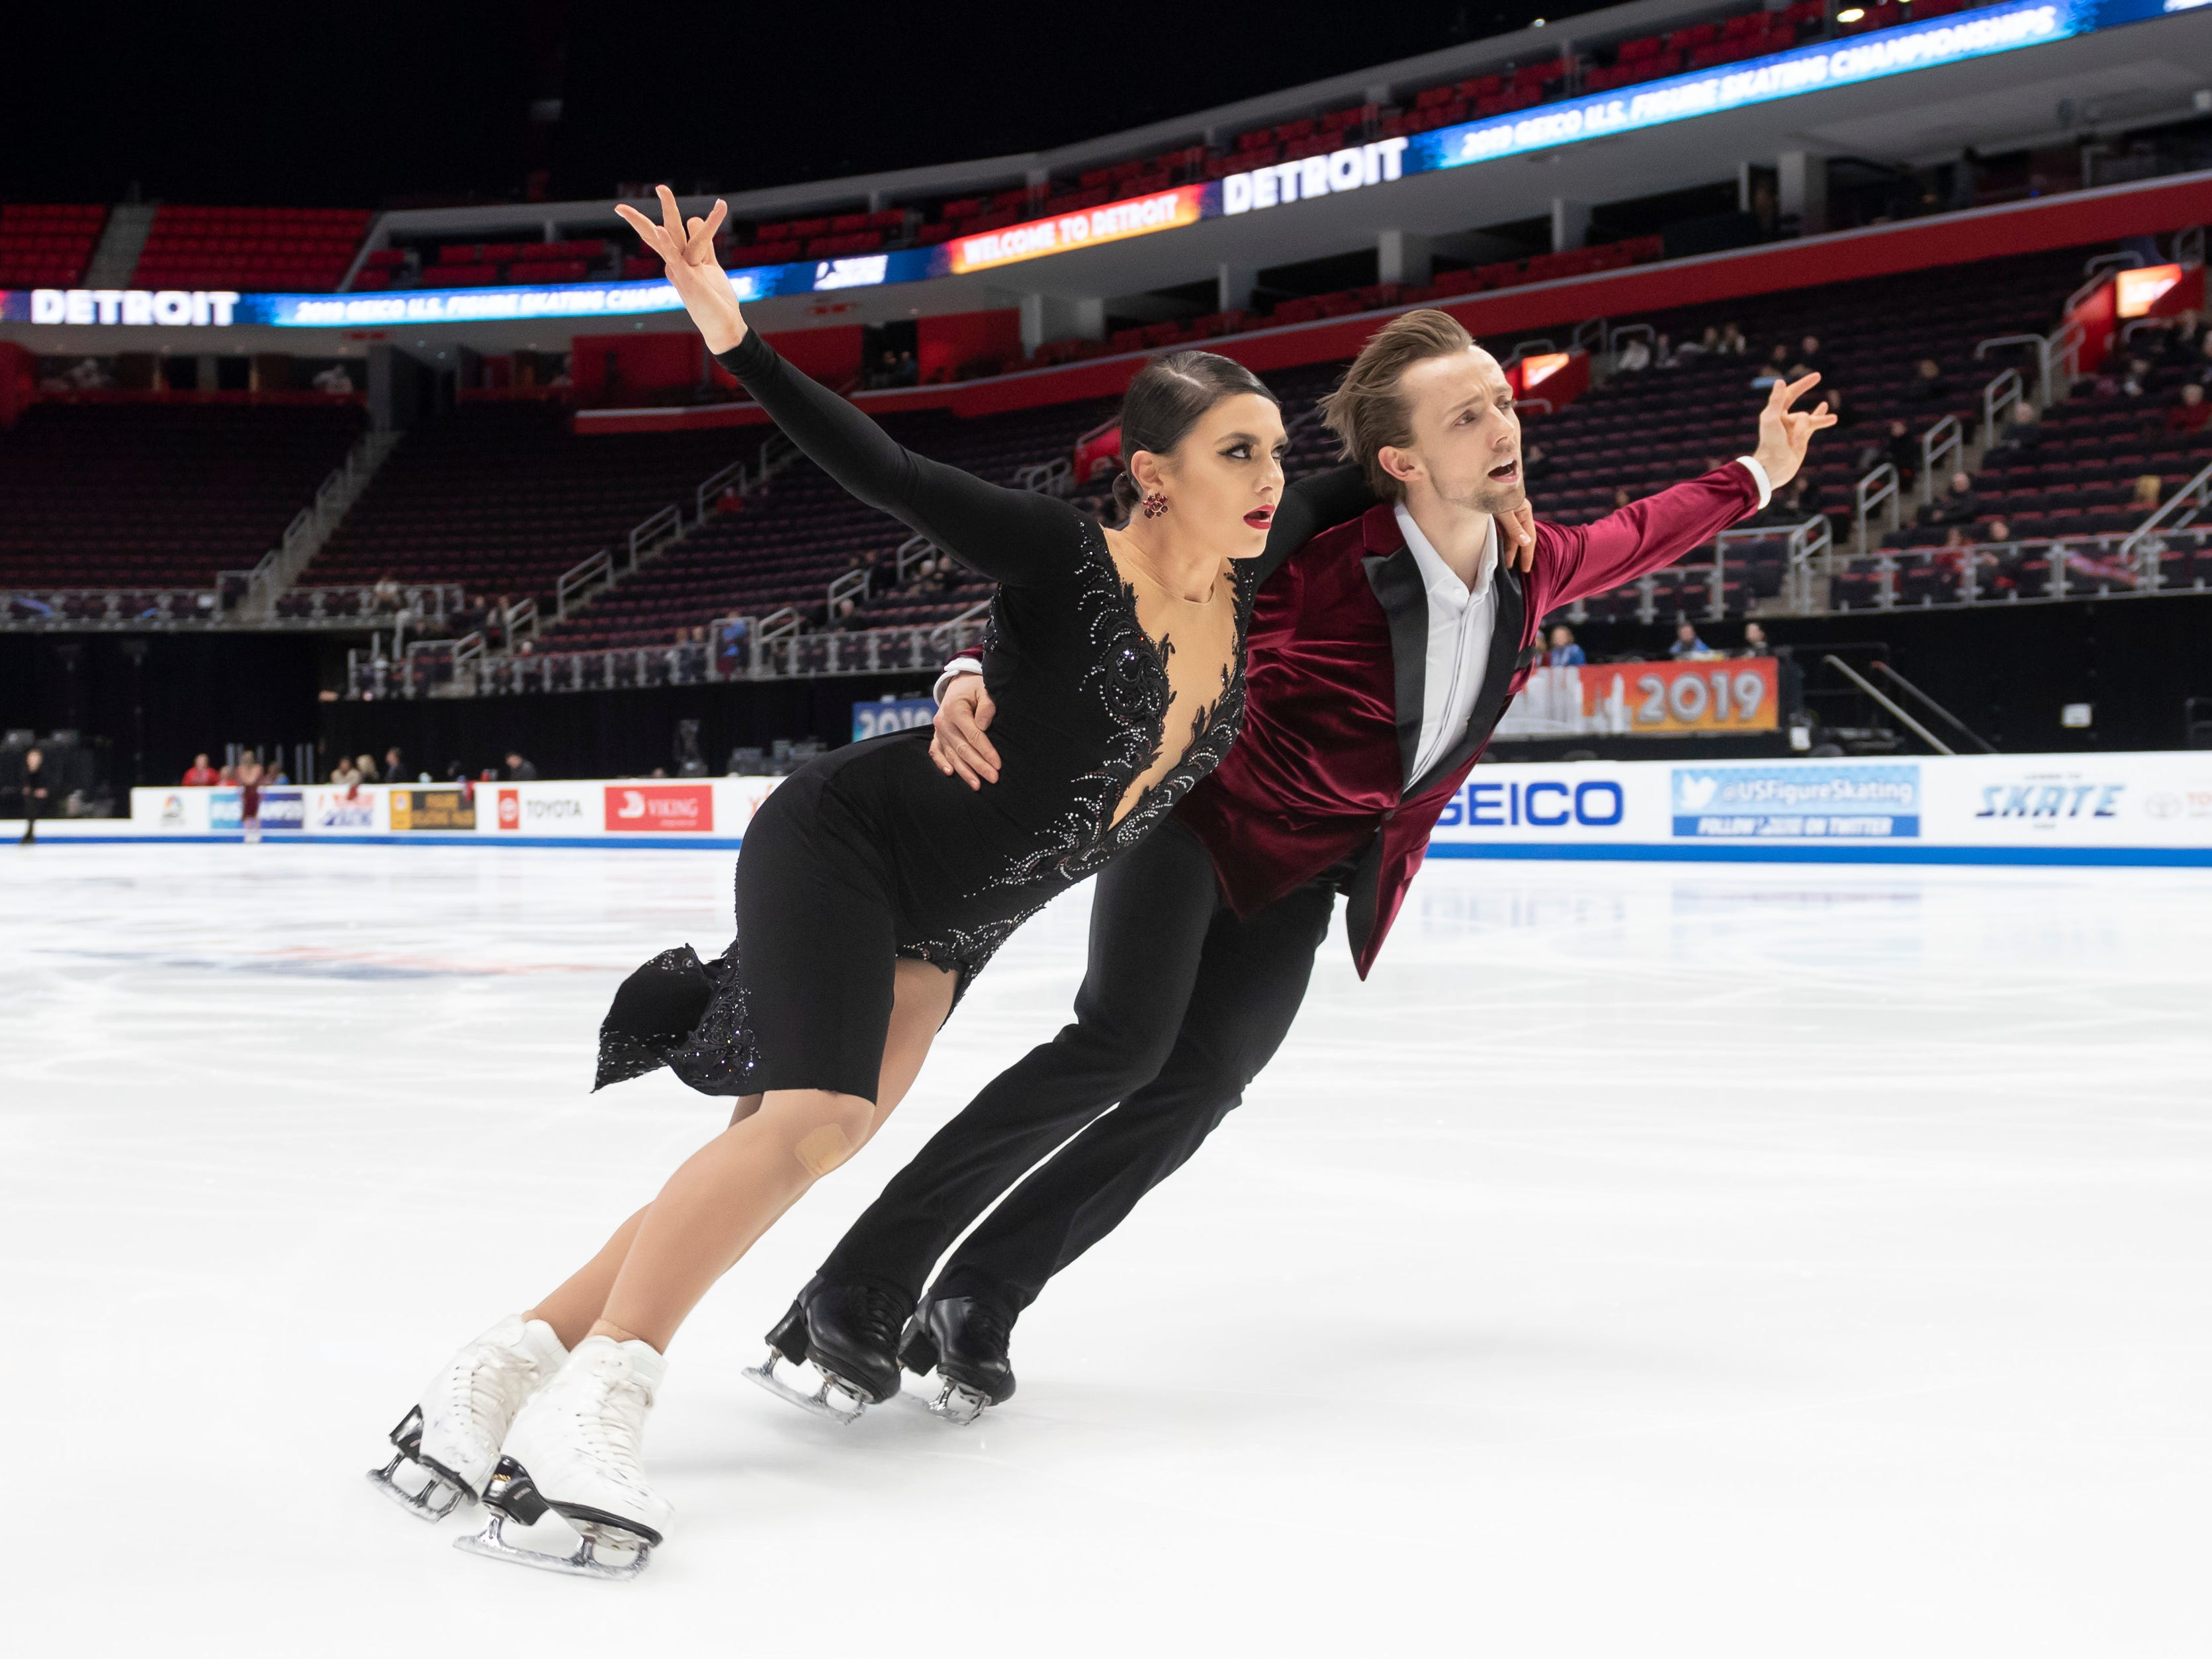 Kaitlin Hawayek and Jean-Luc Baker practice for the dance competition at the U.S. Figure Skating Championships. Hawayek attends Oakland University and is a coach at the Detroit skating club.